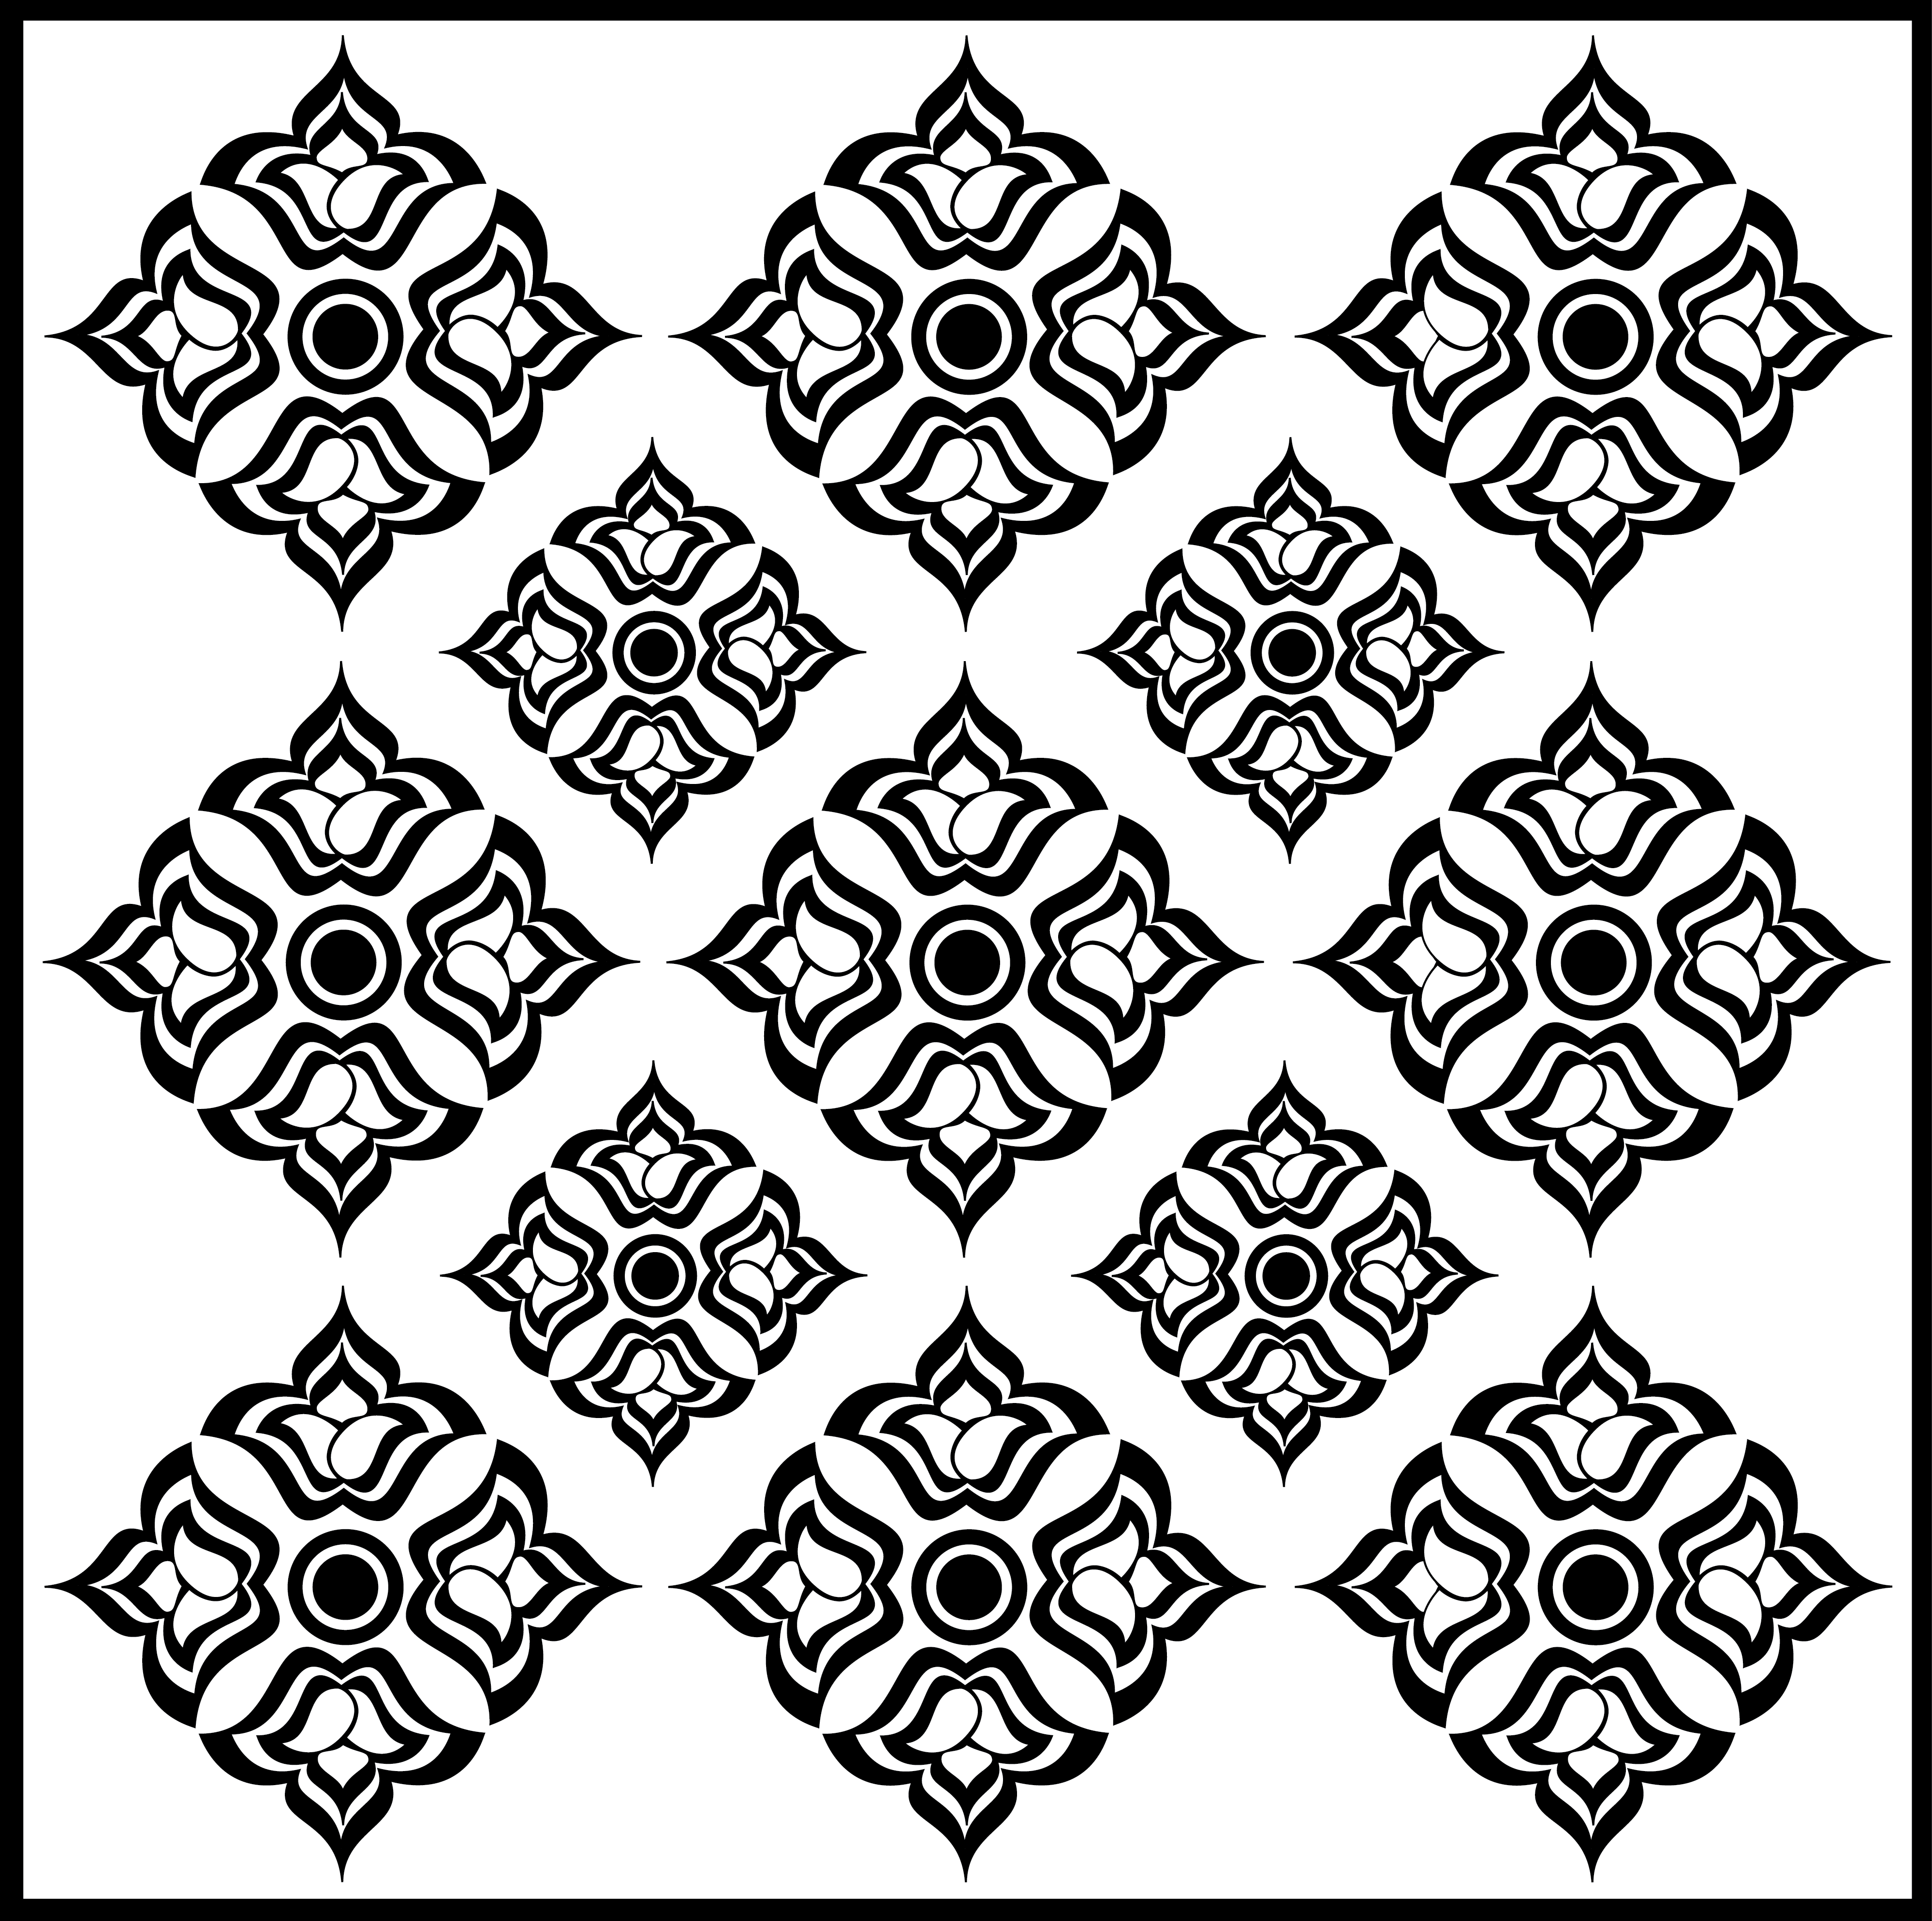 Trinetra about free indian symbols signs patterns graphics download graphic patterns buycottarizona